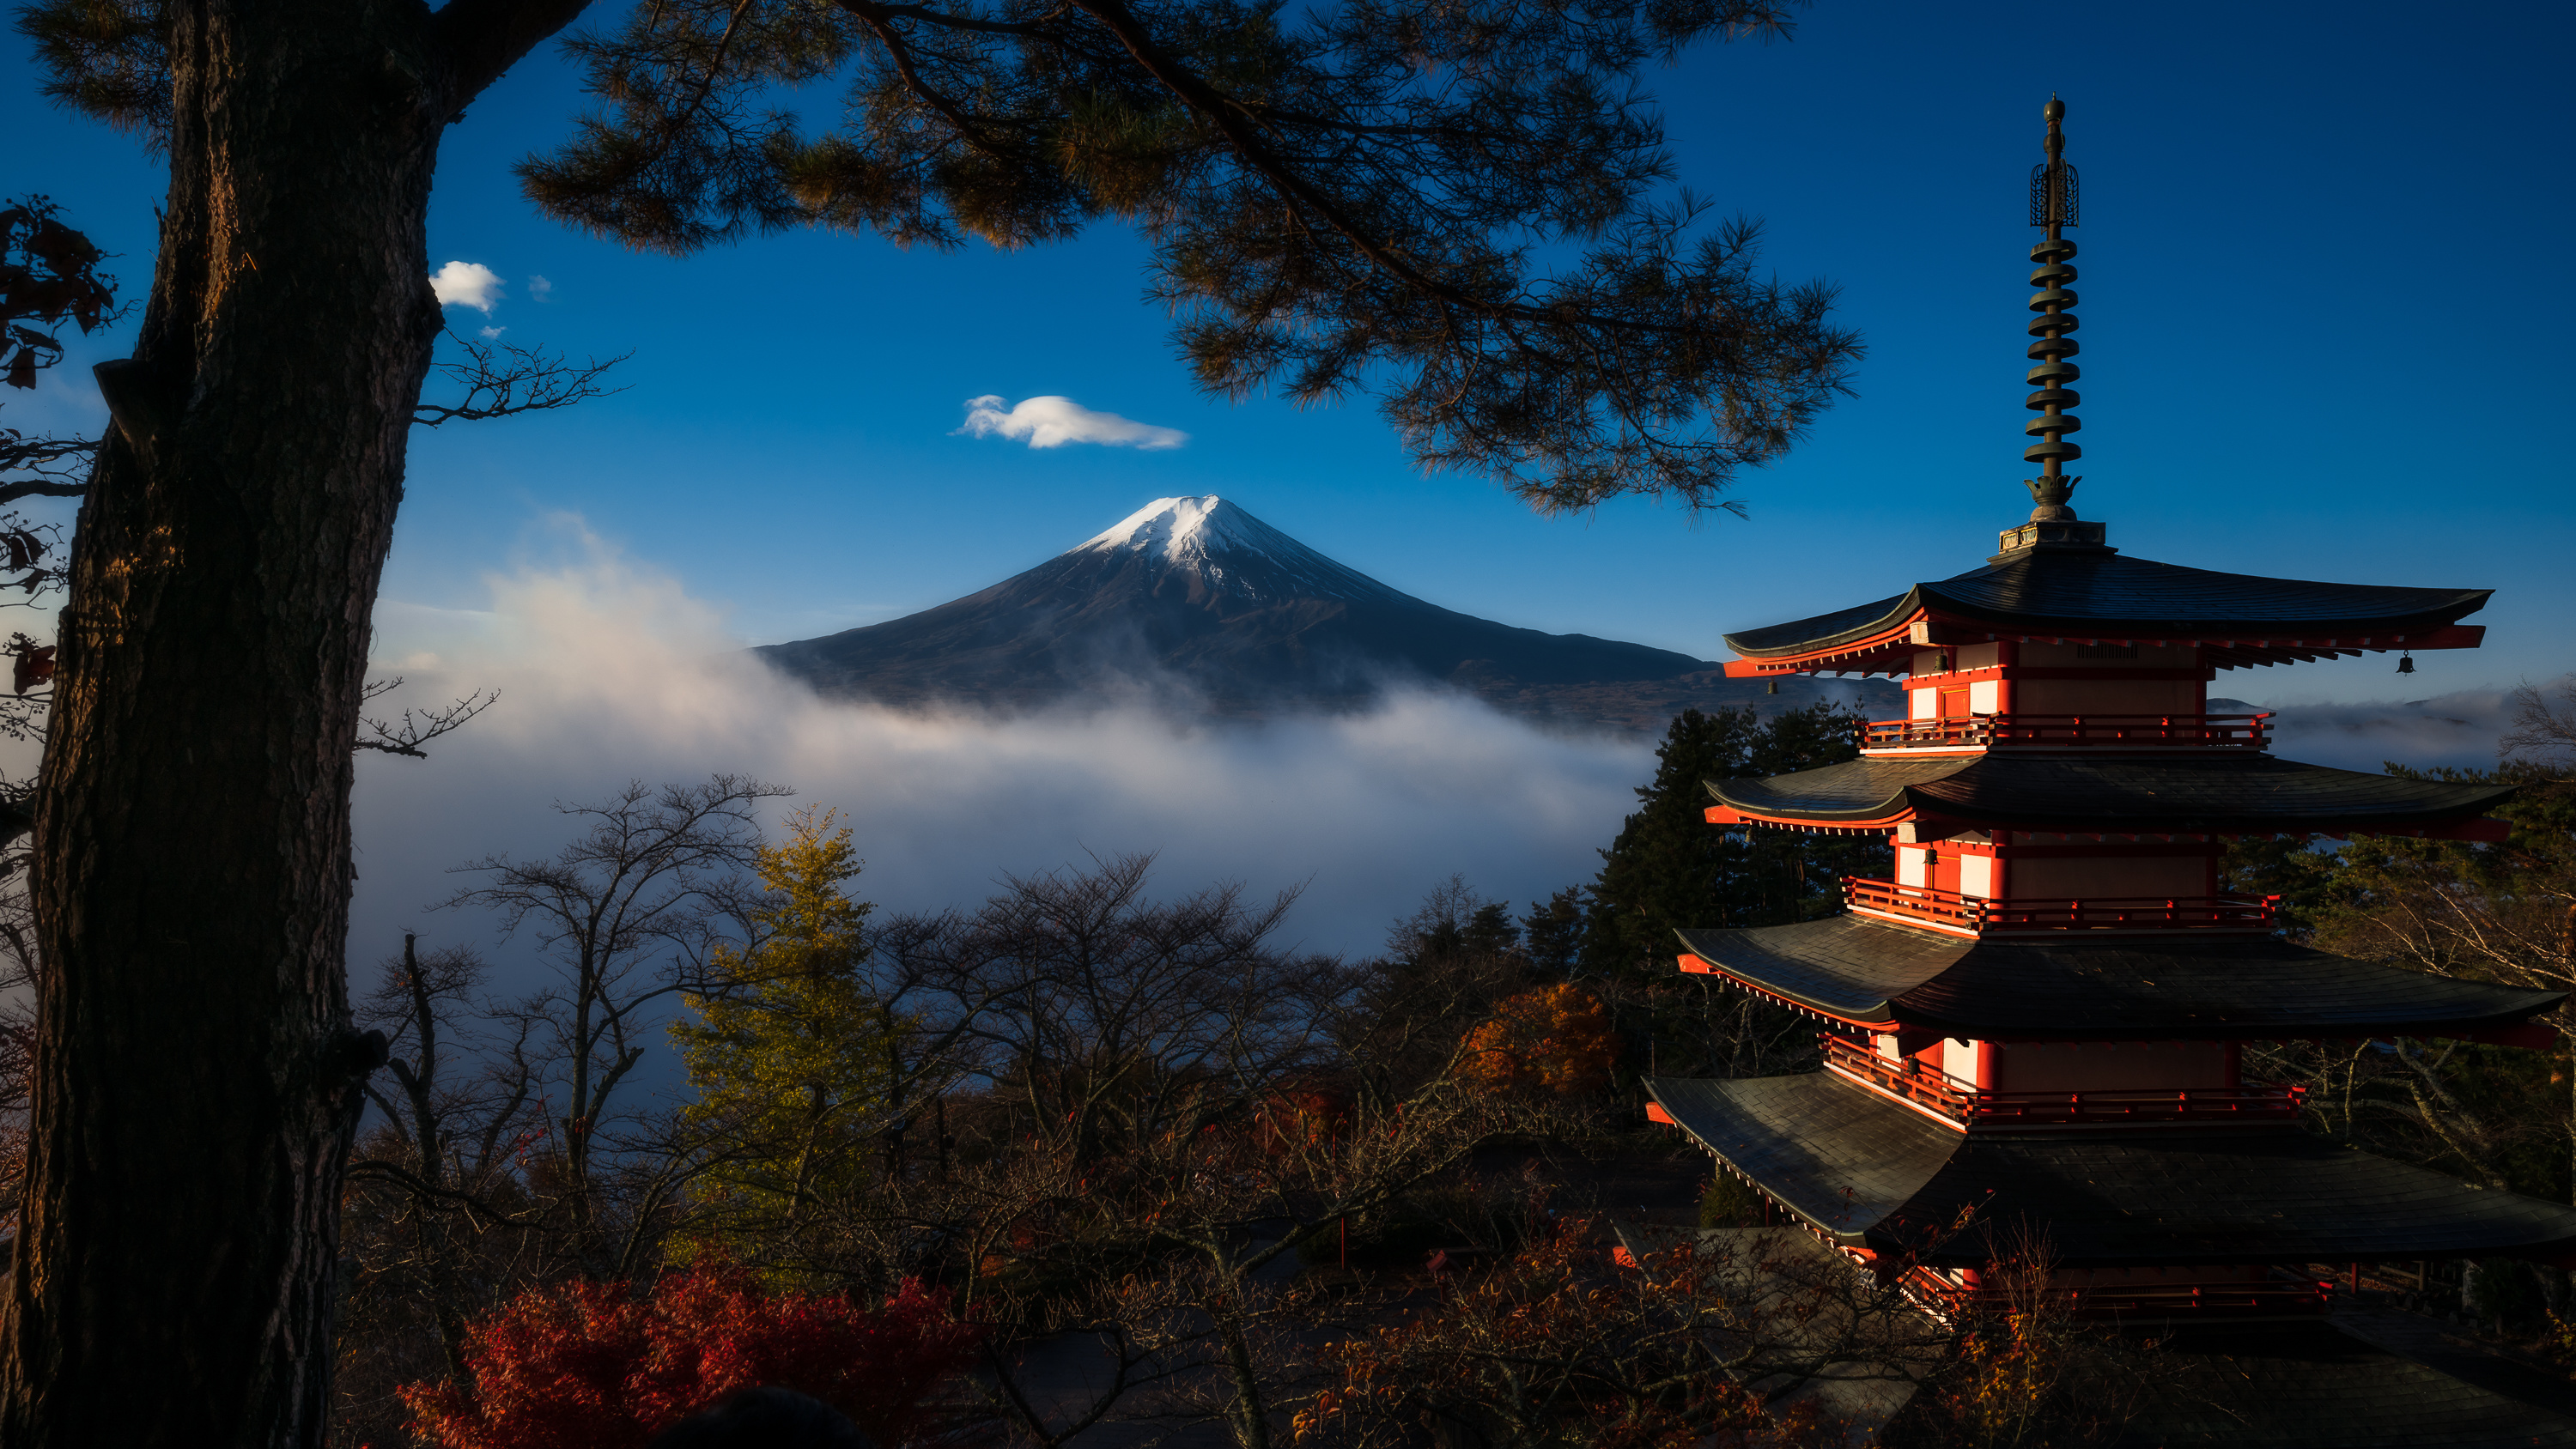 General 3000x1688 nature landscape Japan pagoda mountains Mount Fuji trees